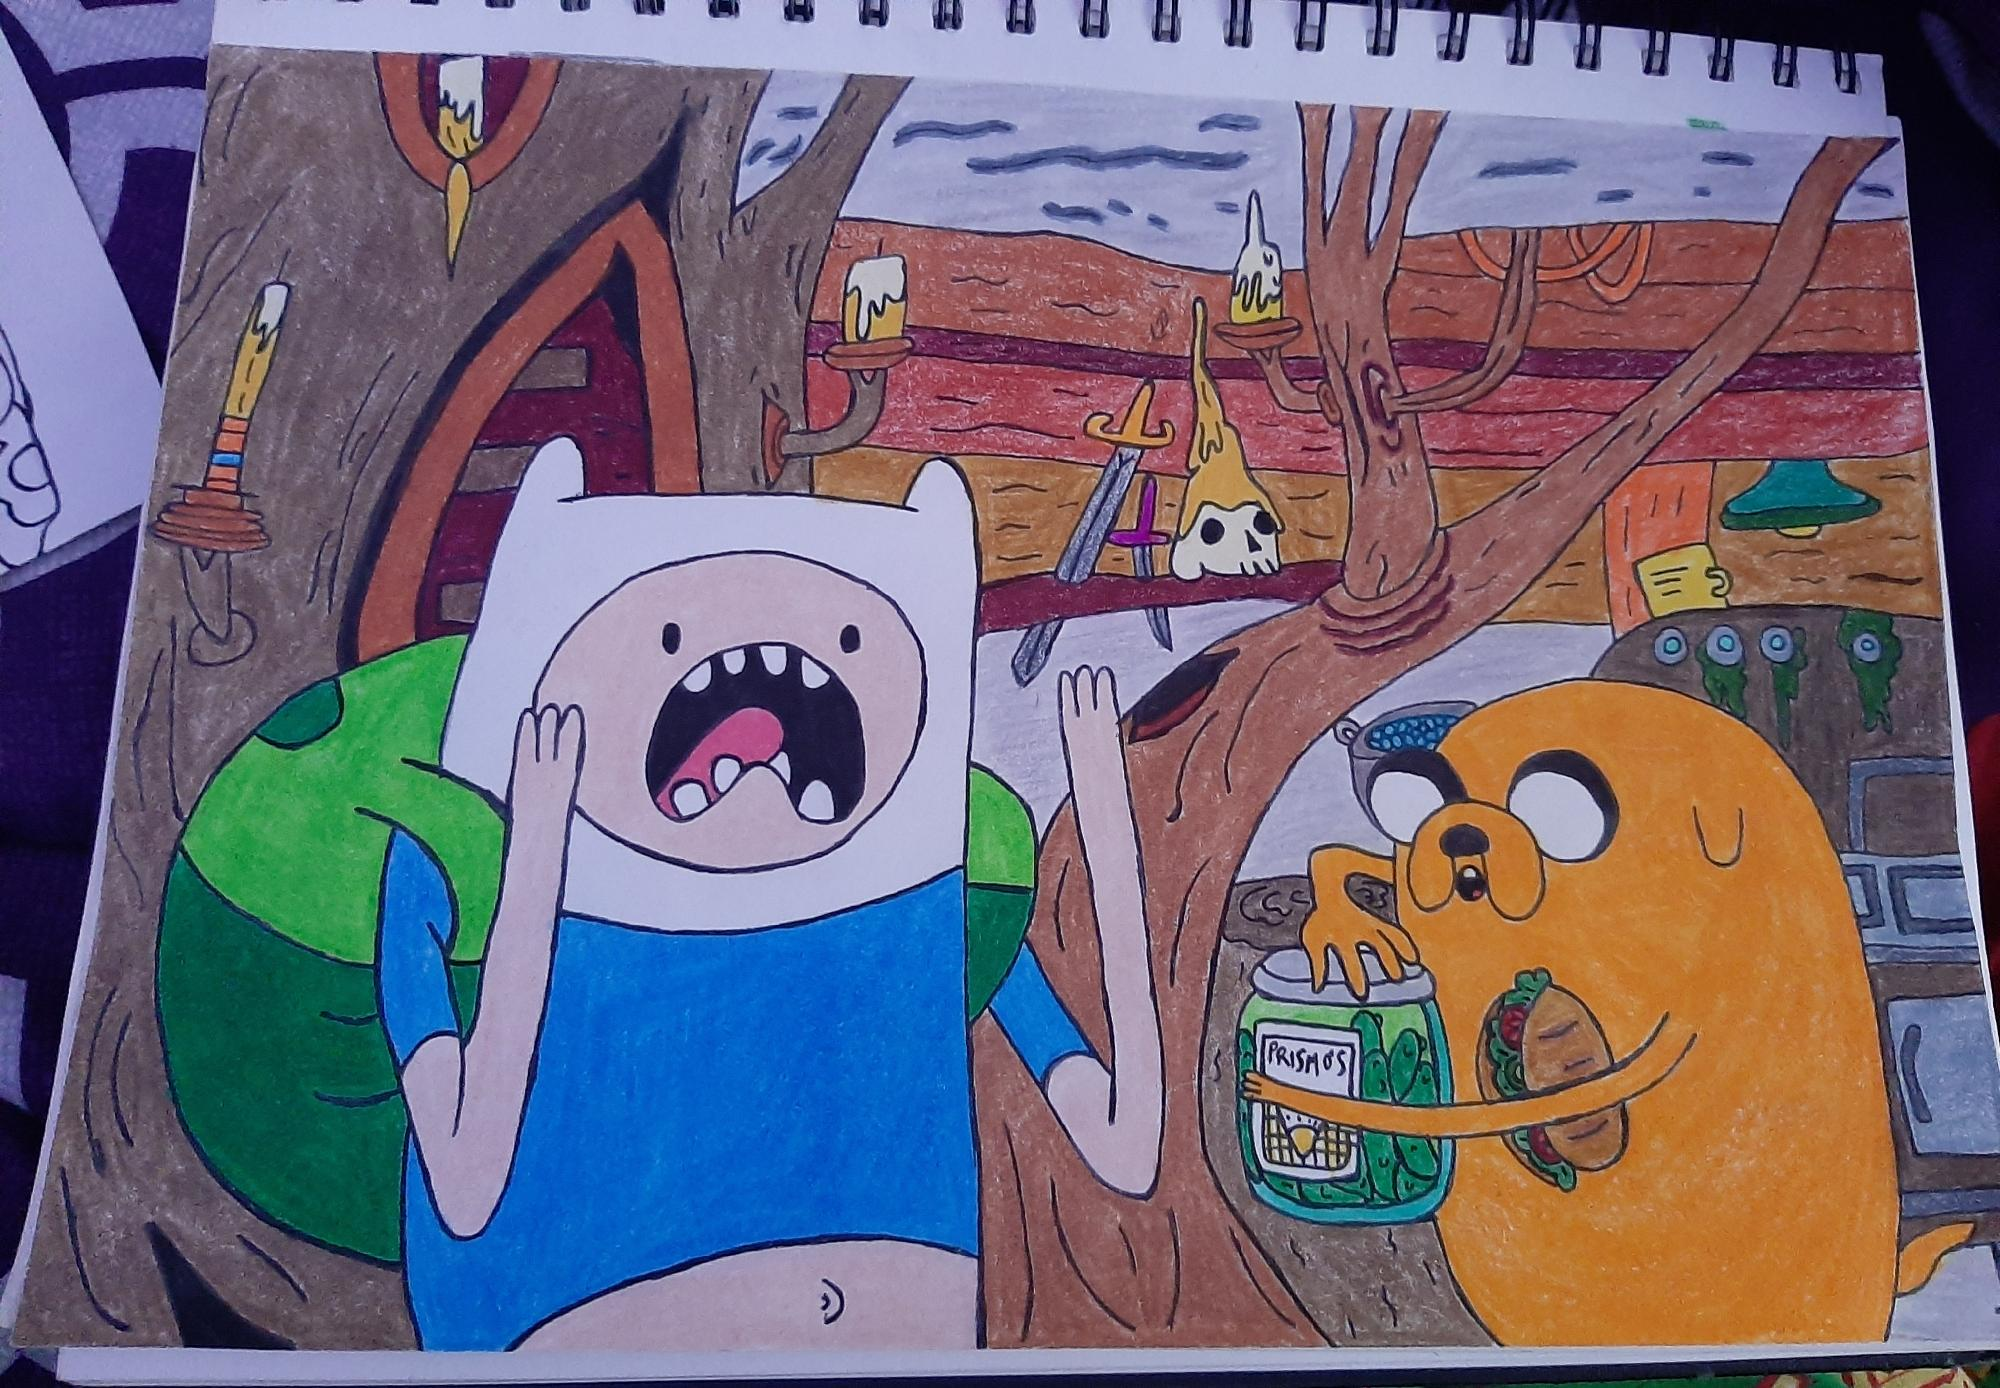 Haven't posted in a while but I'm still drawing ❤ Finn and Jake